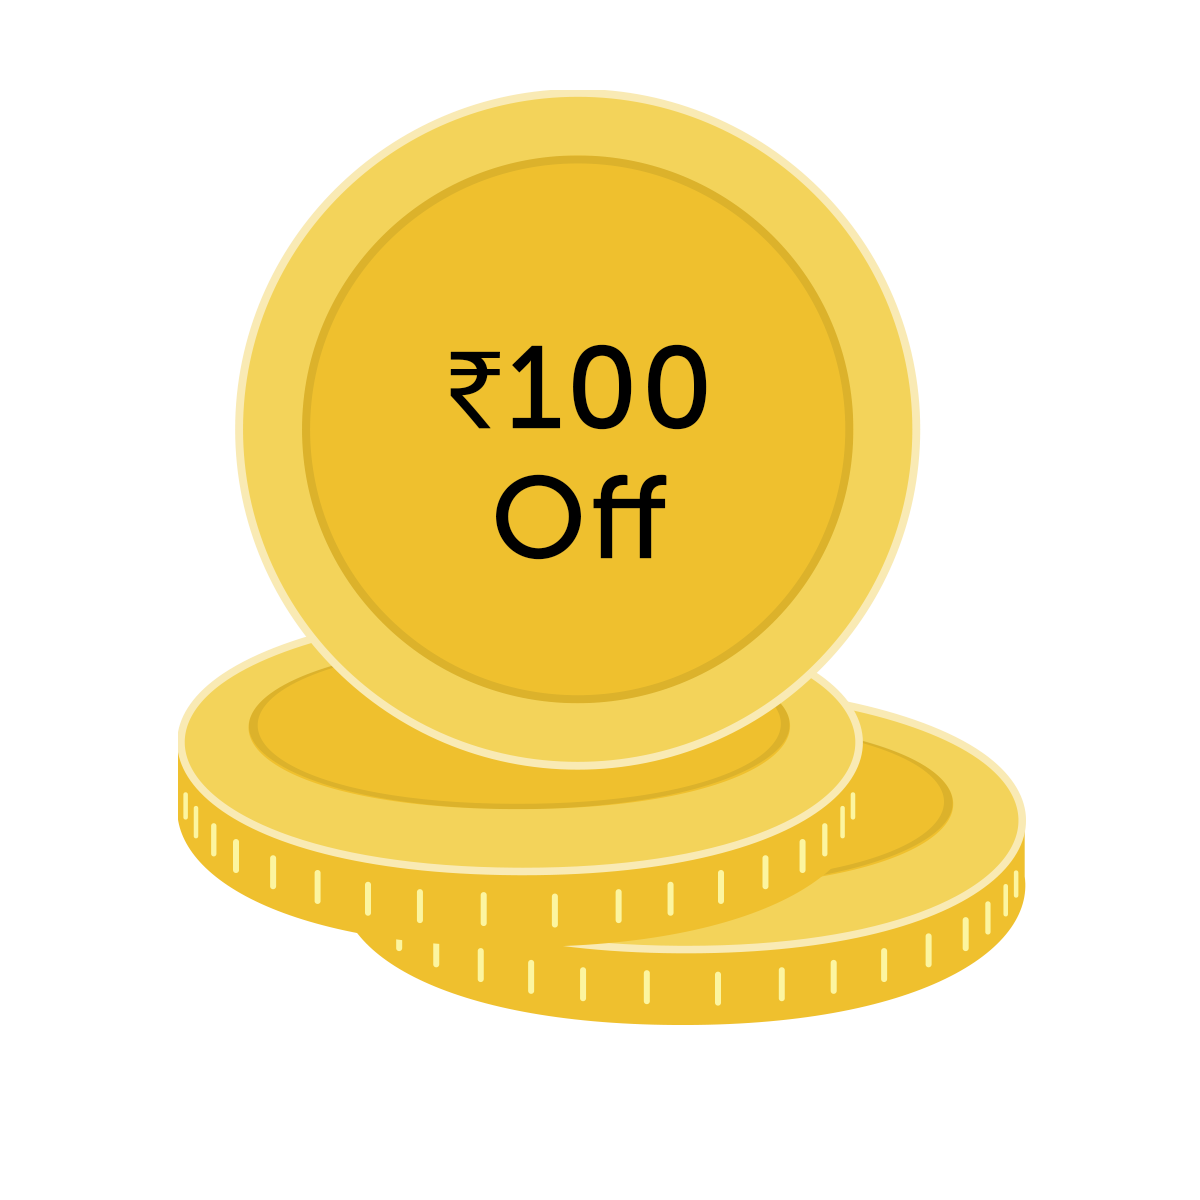 ₹100 off coupon for 1000 Coins